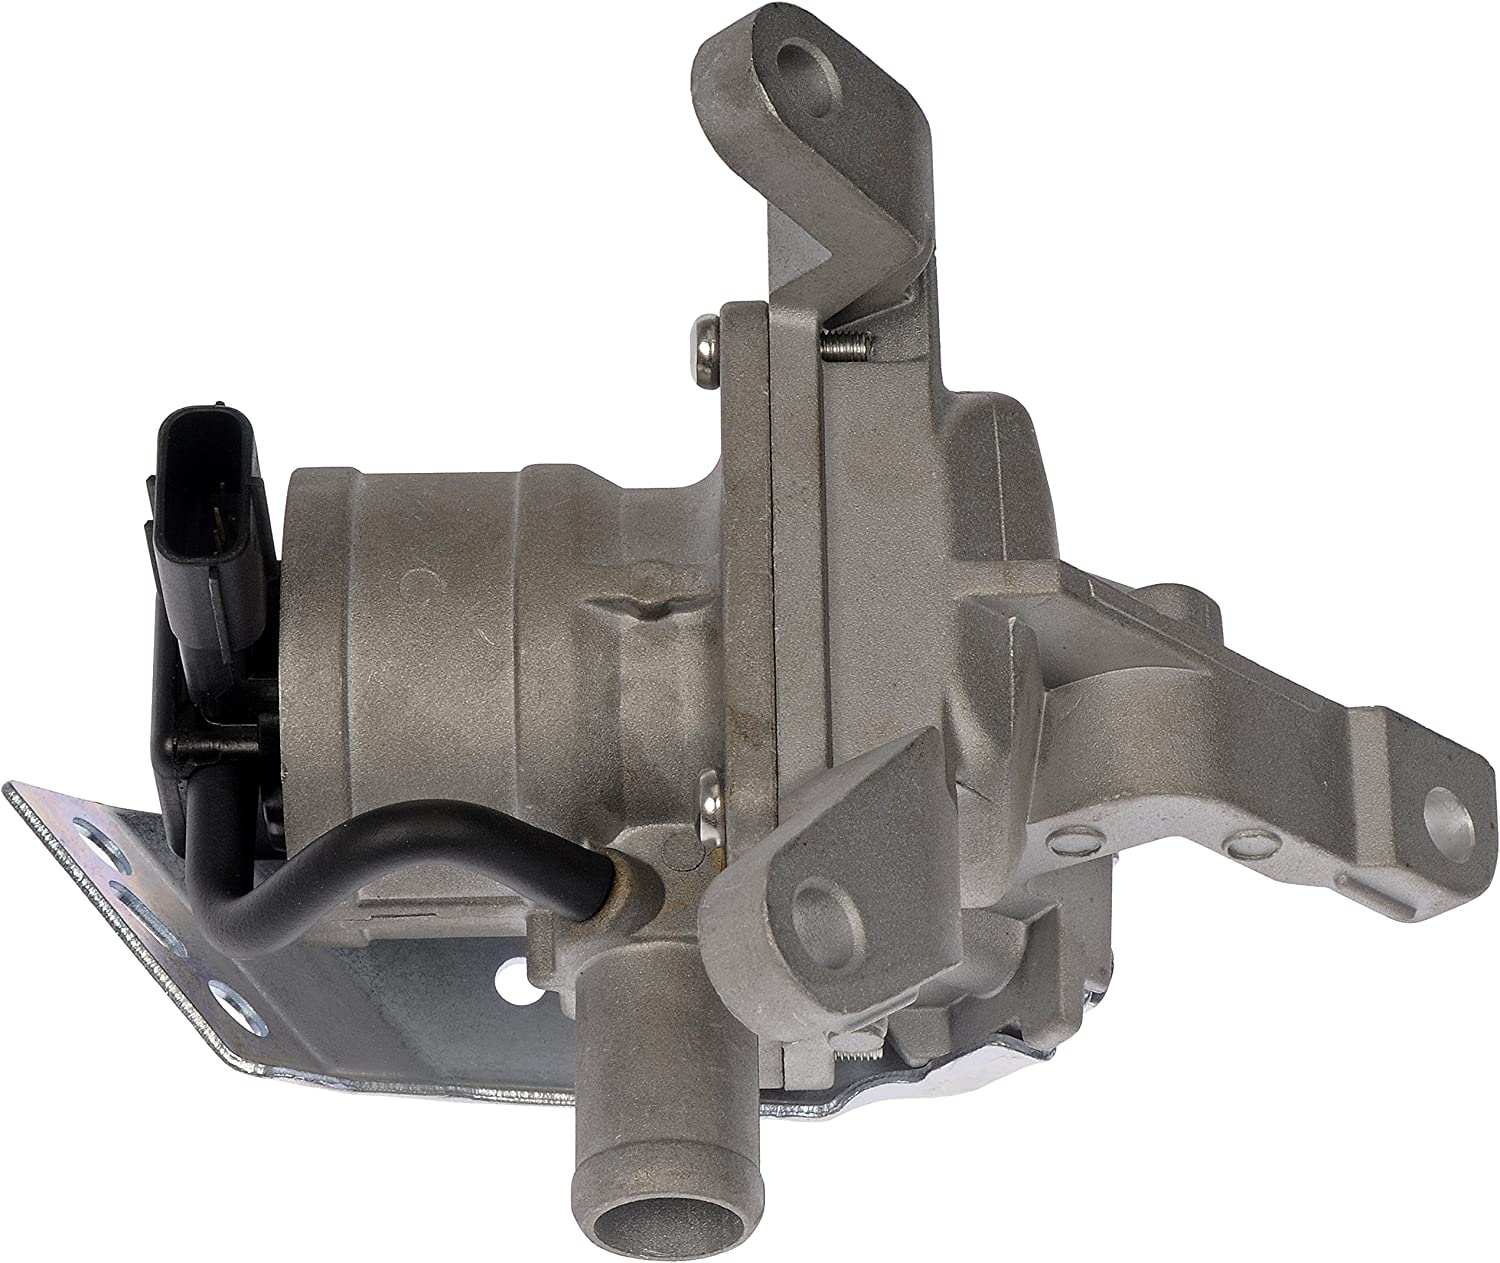 SEQUOIA 08-09 Fits RT38350001 Secondary Air Injection Check Valve For TUNDRA 07-09 2571050032